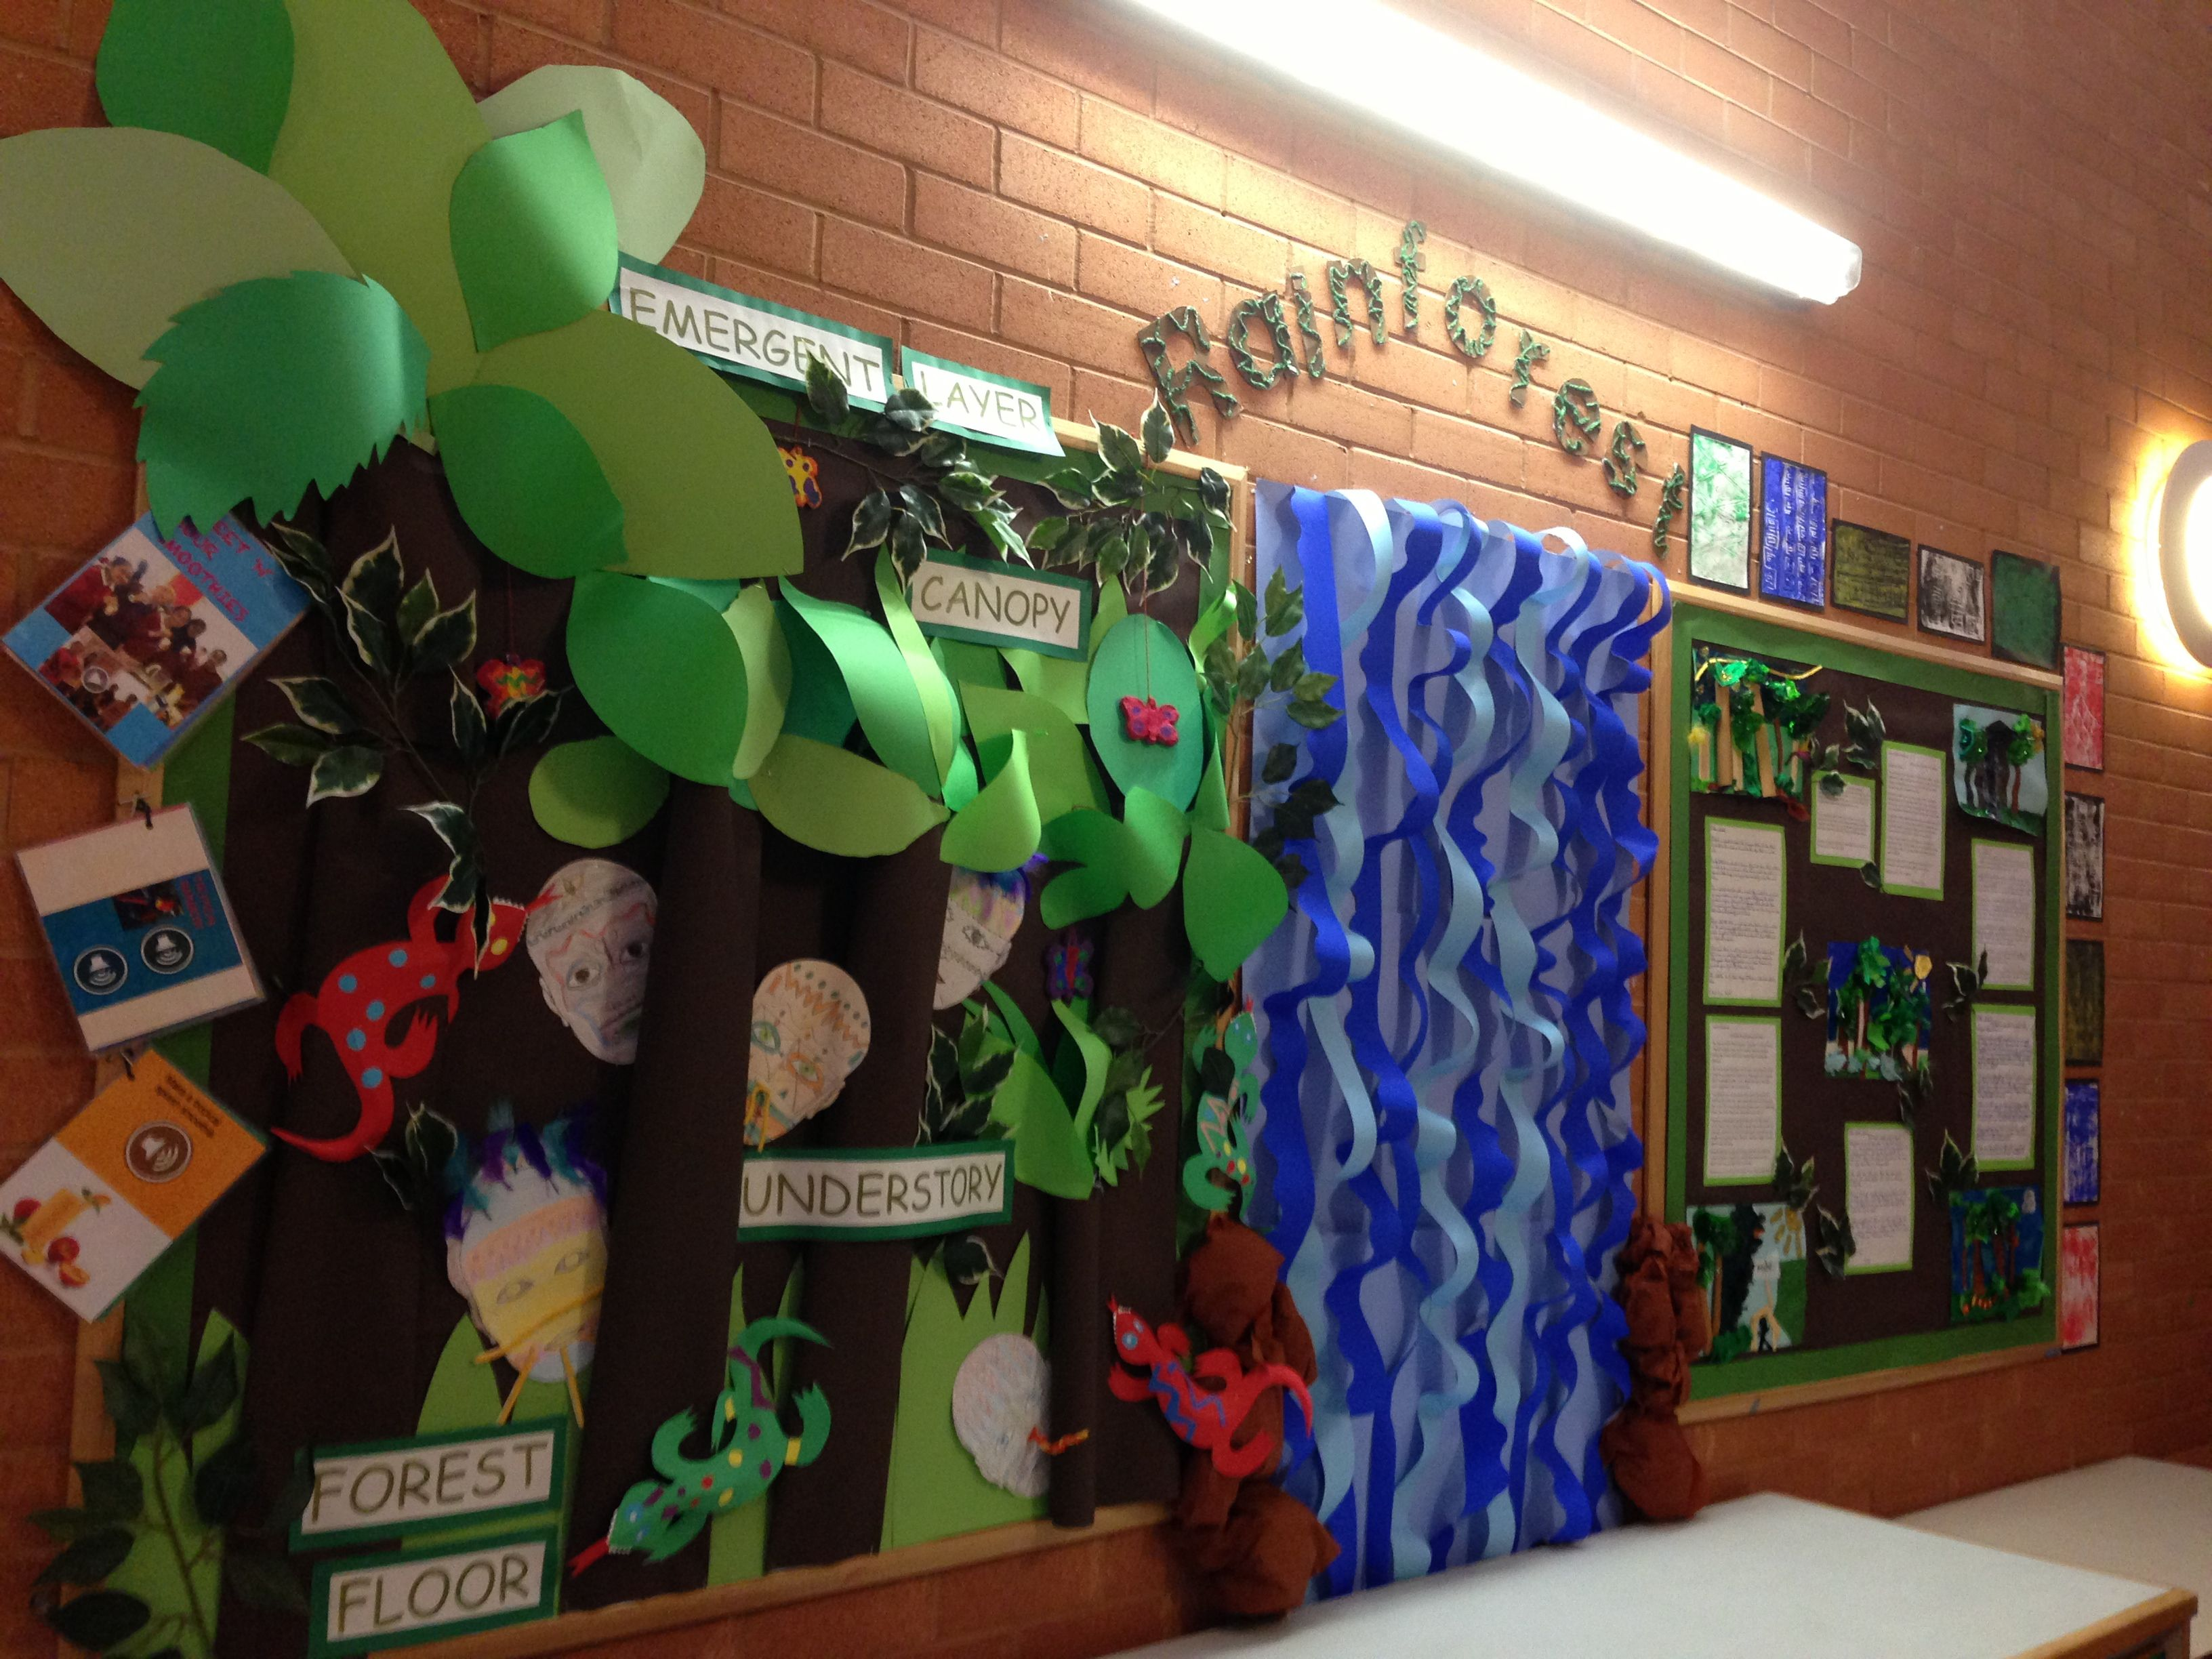 Rainforest Theme Classroom Ideas ~ My rainforest classroom display ocean and land theme